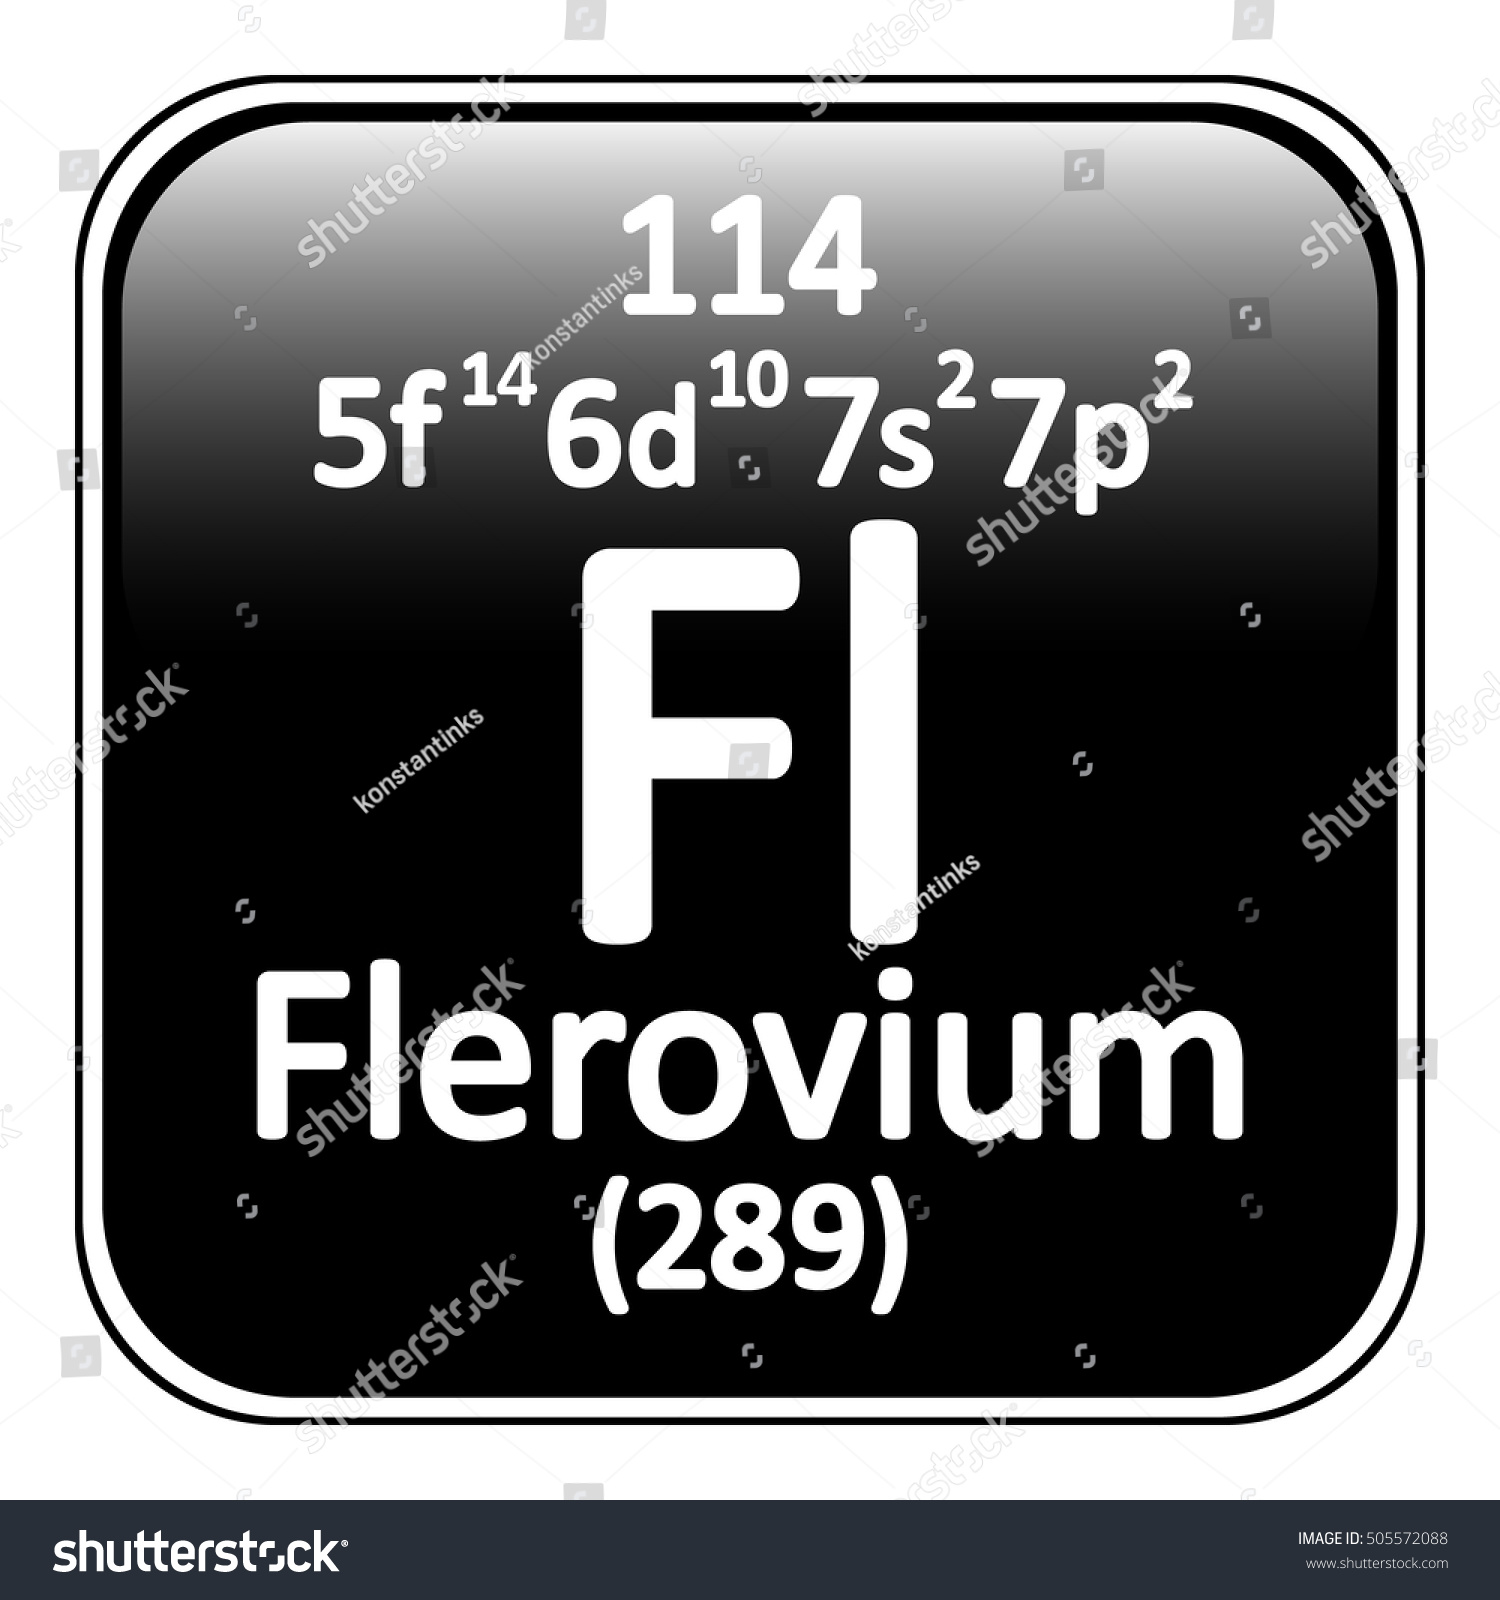 Periodic table element 114 image collections periodic table images 114 element periodic table images periodic table images periodic table element 114 gallery periodic table images gamestrikefo Images